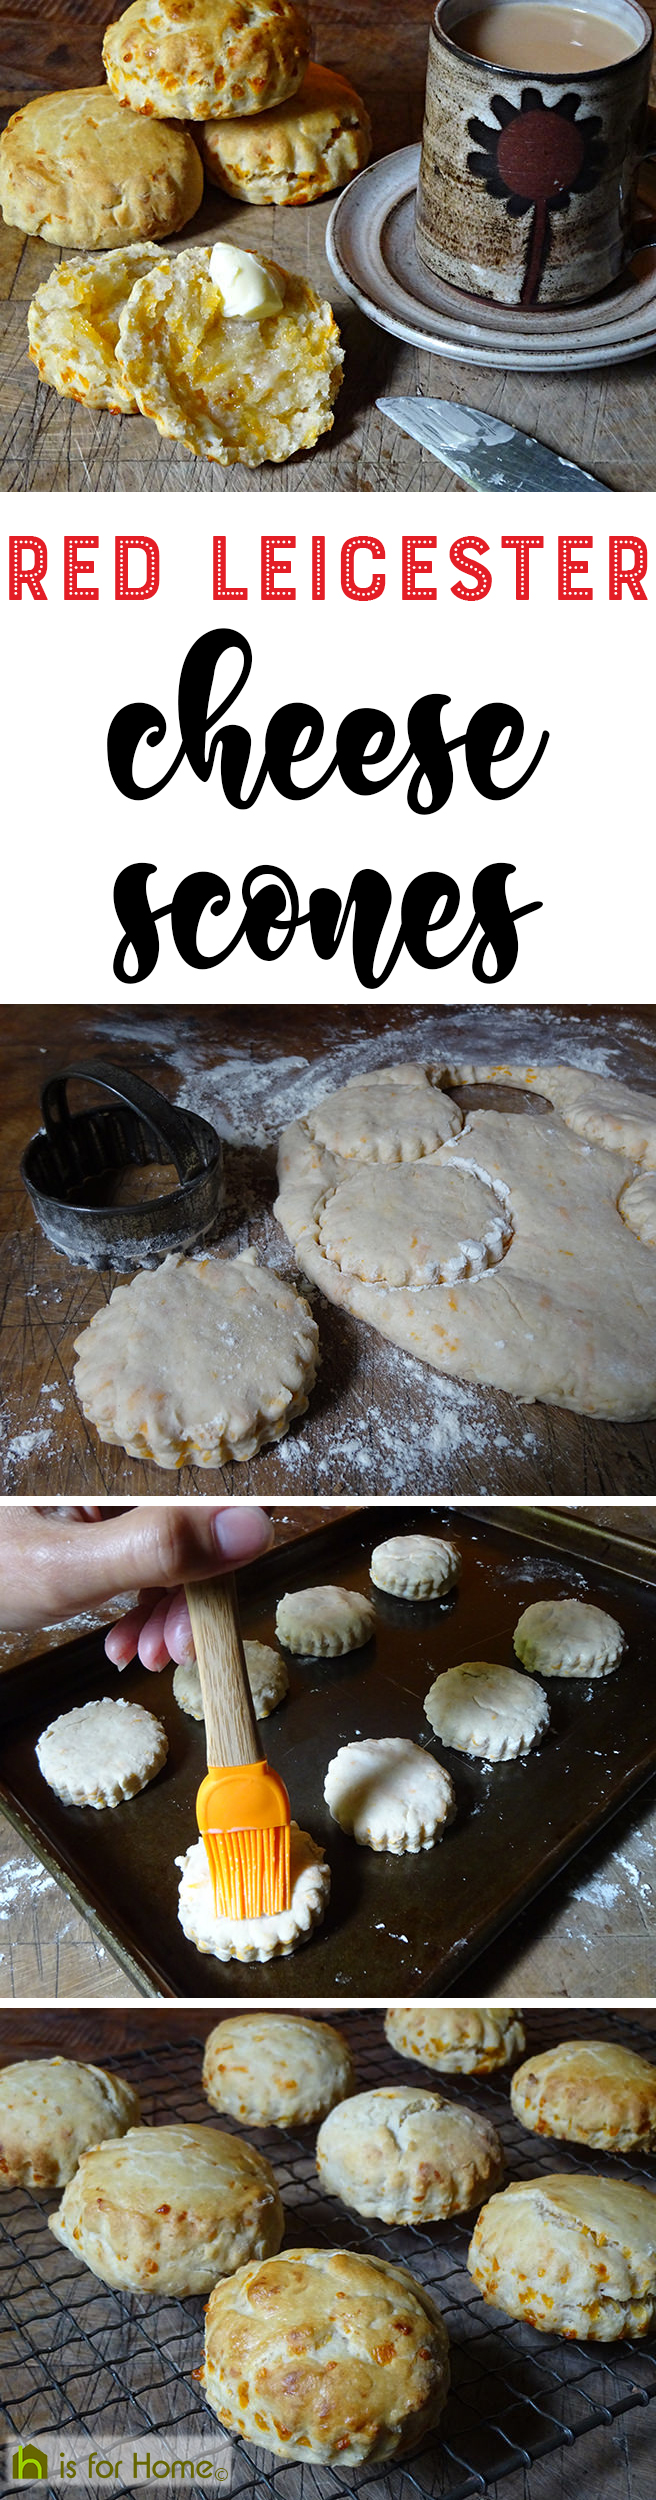 Home-made red Leicester cheese scones | H is for Home  #recipe #baking #food #pastry #scones